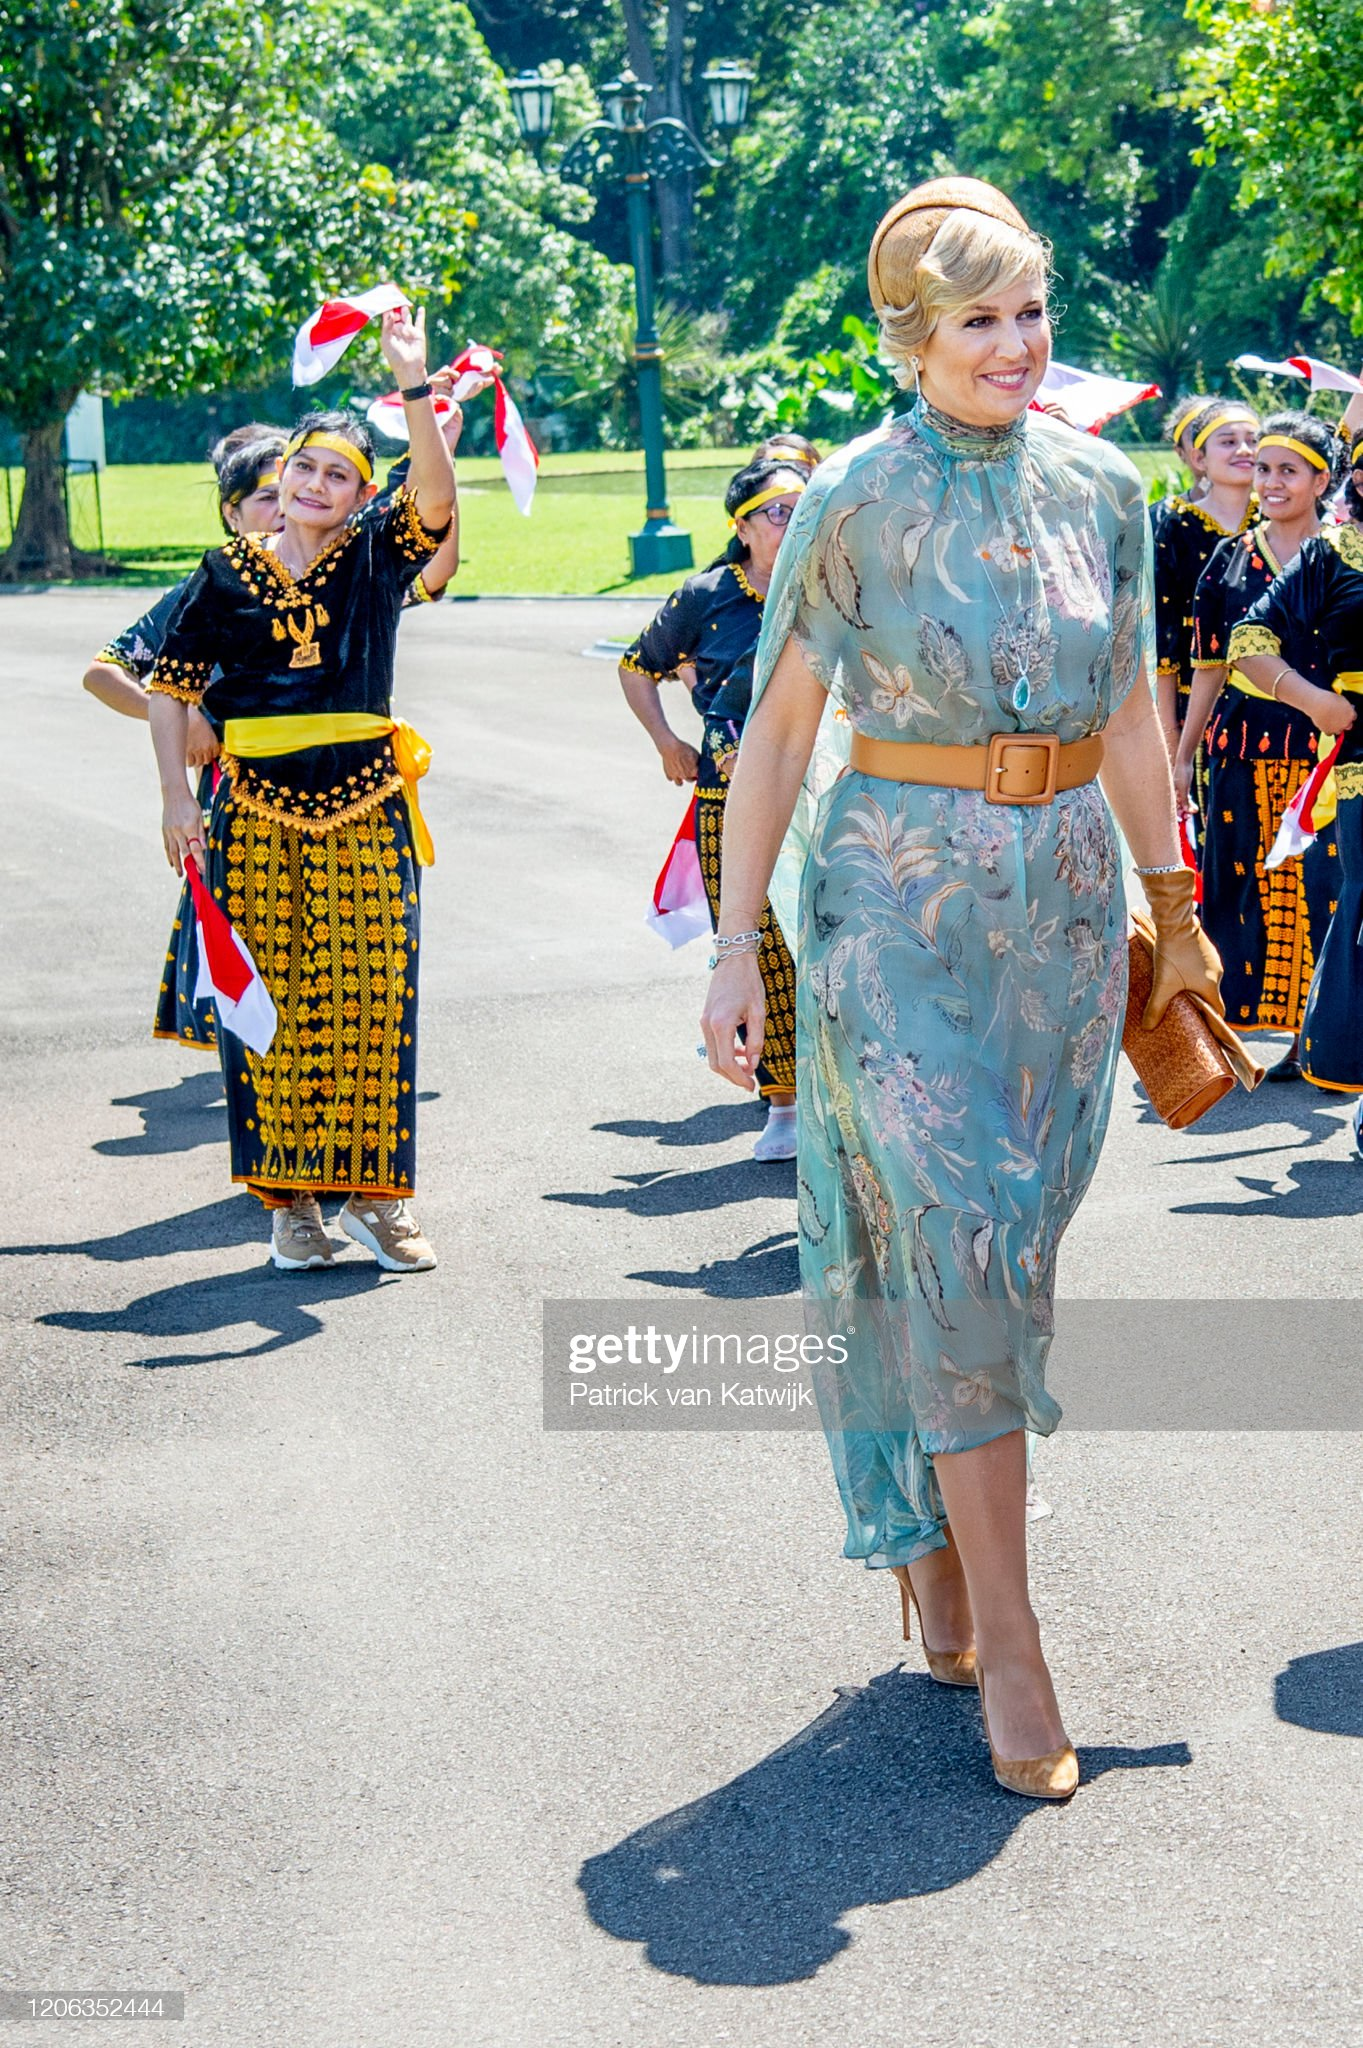 https://media.gettyimages.com/photos/queen-maxima-of-the-netherlands-are-welcomed-by-president-jcand-his-picture-id1206352444?s=2048x2048